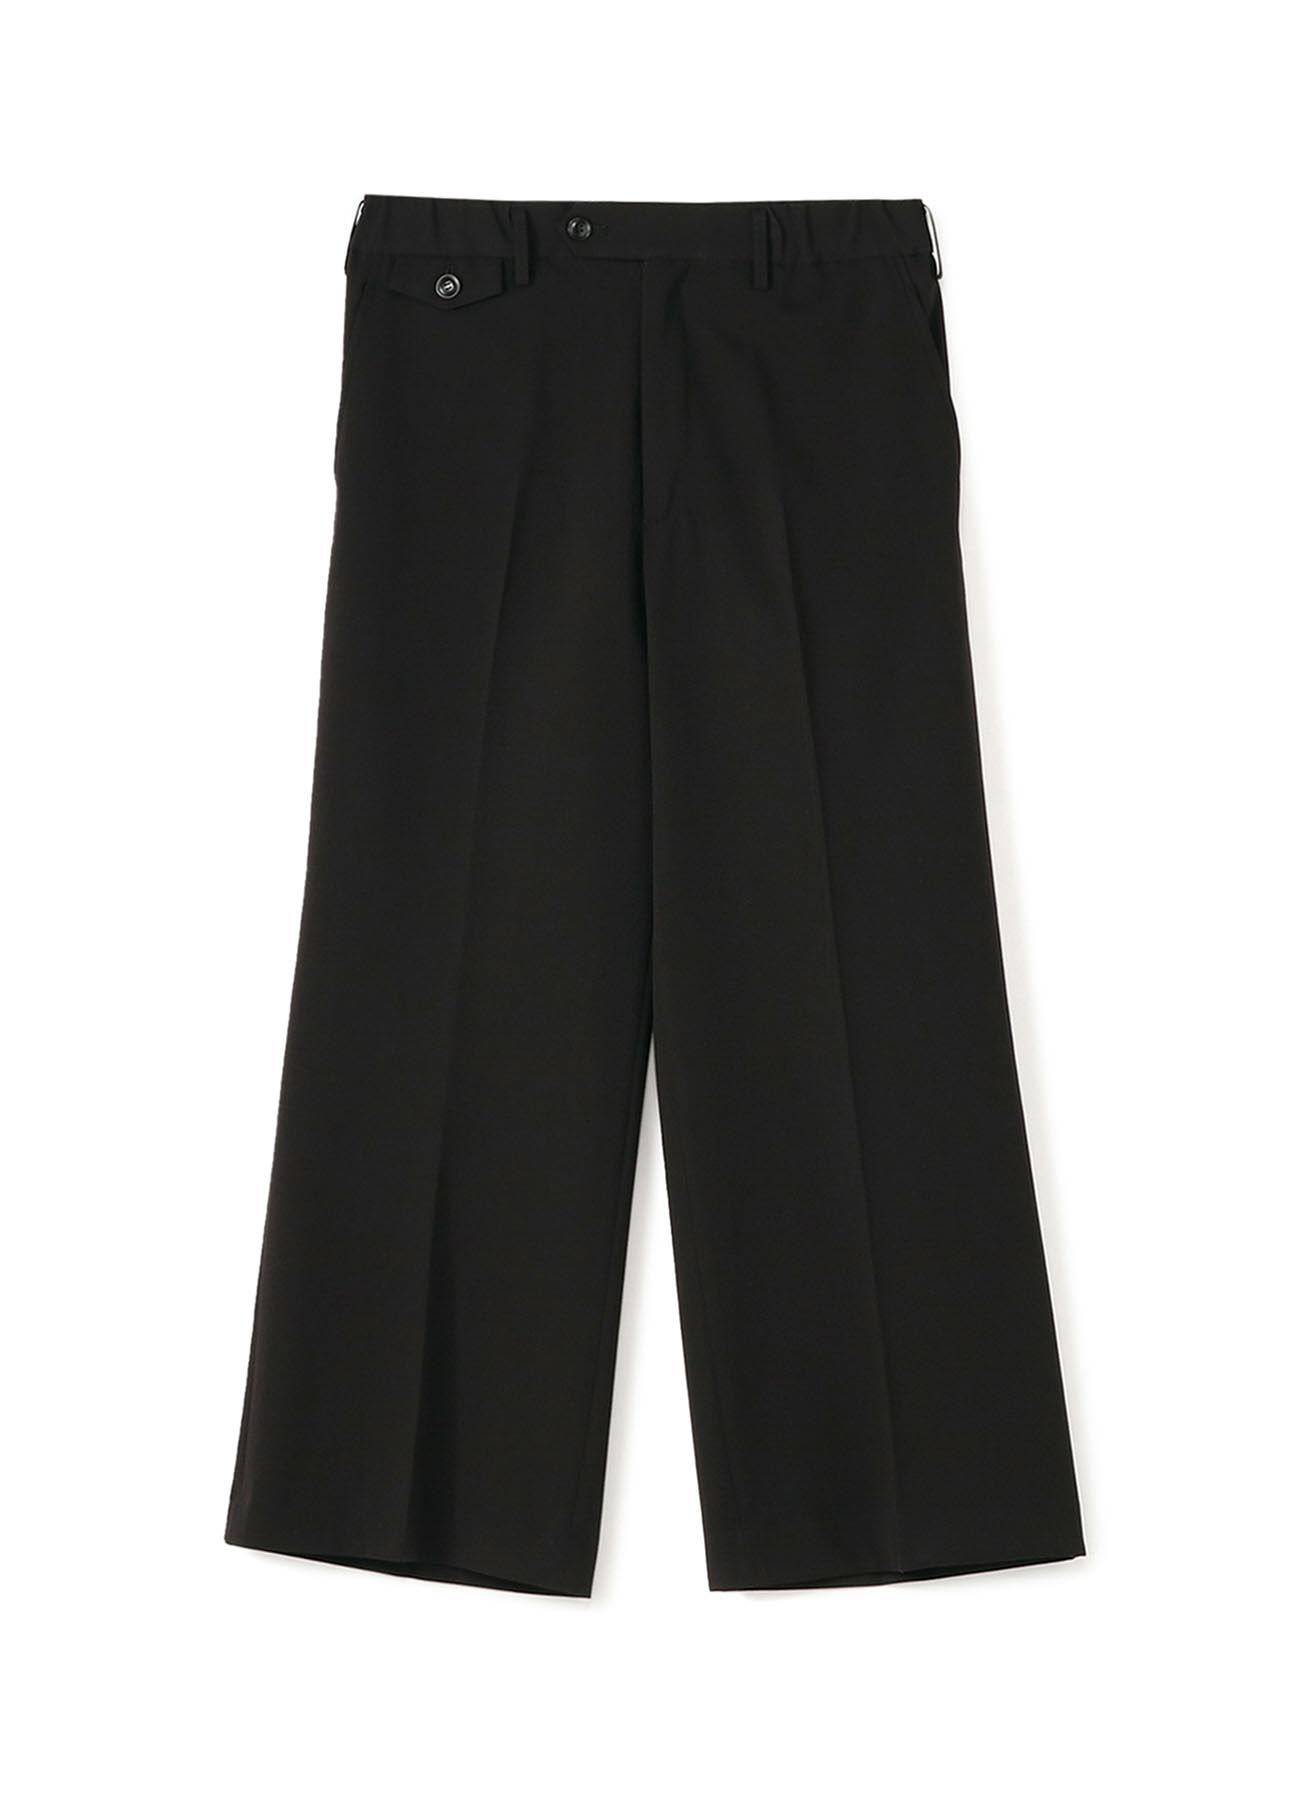 Pe/Rayon Gabardine Stretch No-tuck Flare Pants